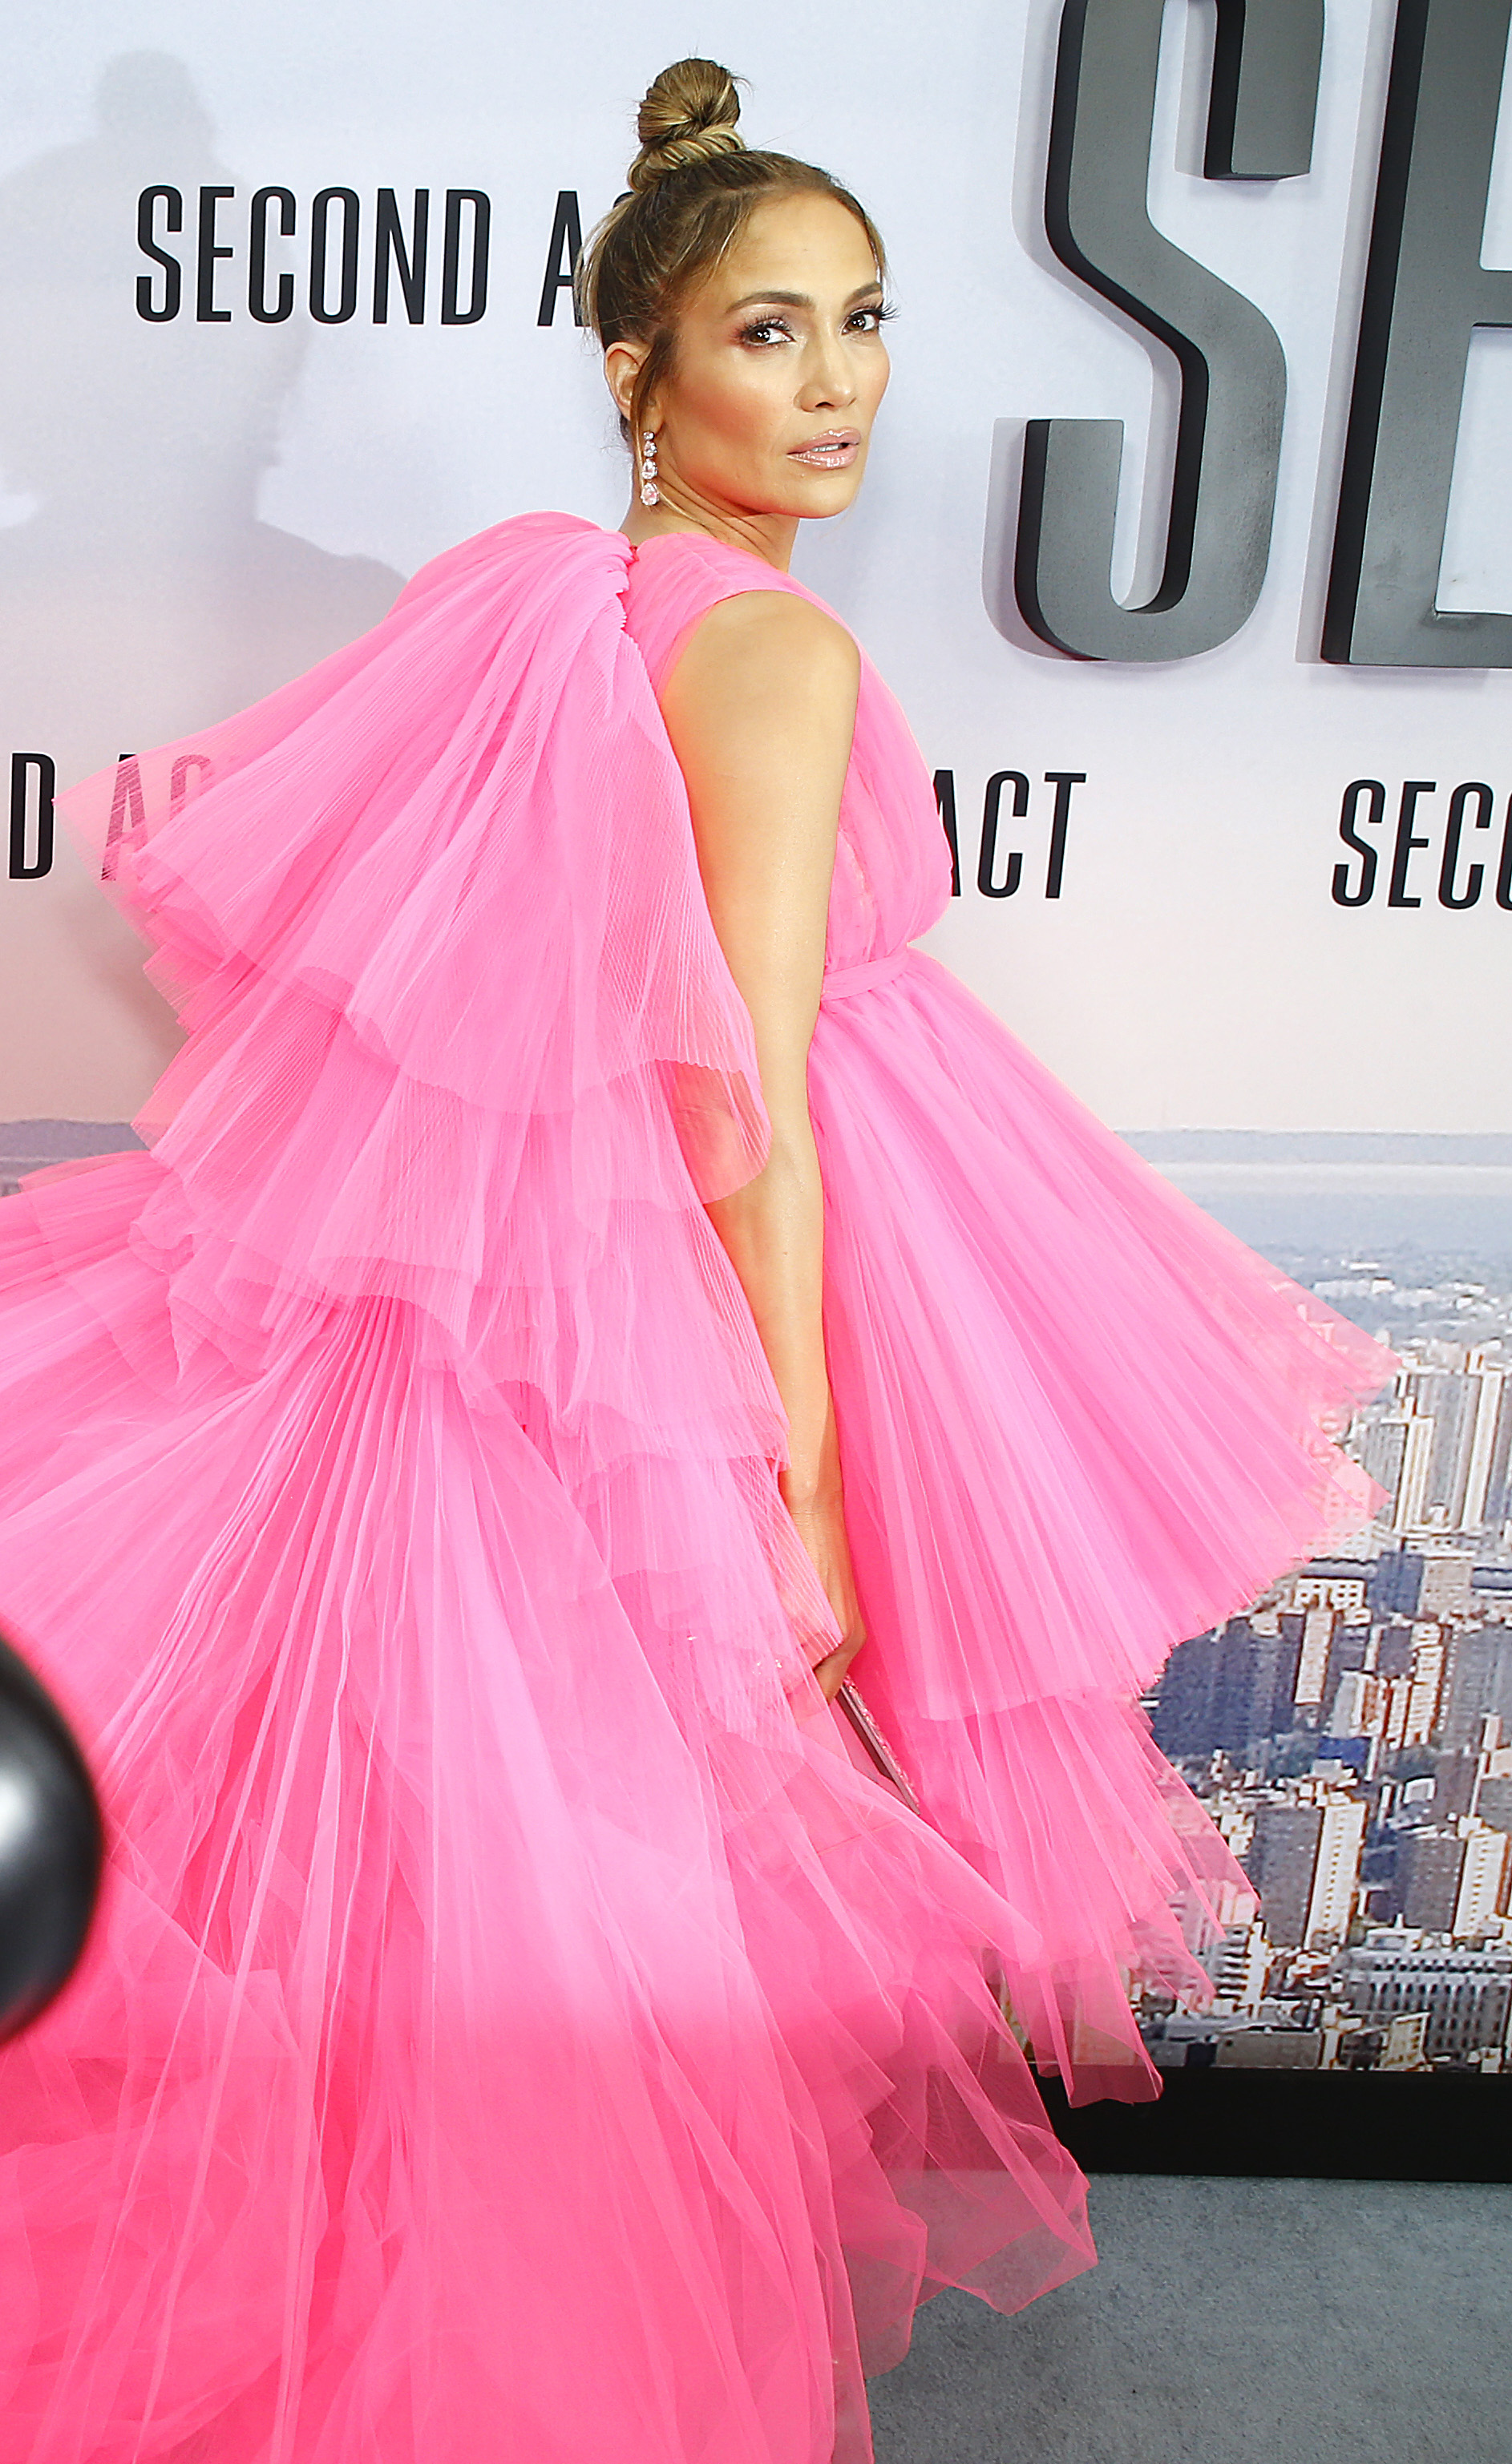 Jennifer Lopez Hottest Looks On Red Carpet That Made Her The Center Of All Attraction 4